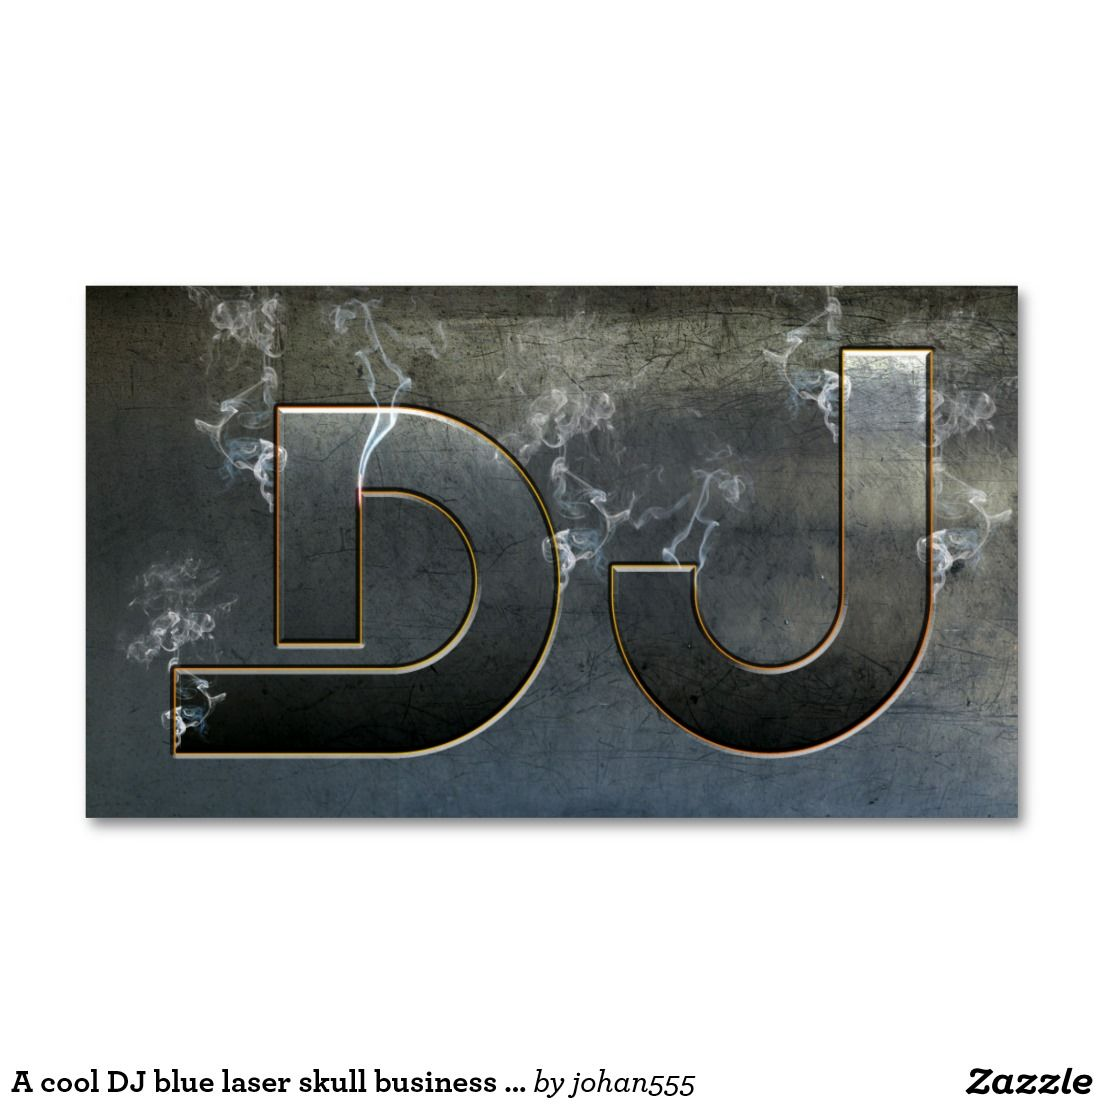 A cool dj blue laser skull business card djmusic business cards a cool dj blue laser skull business card reheart Image collections